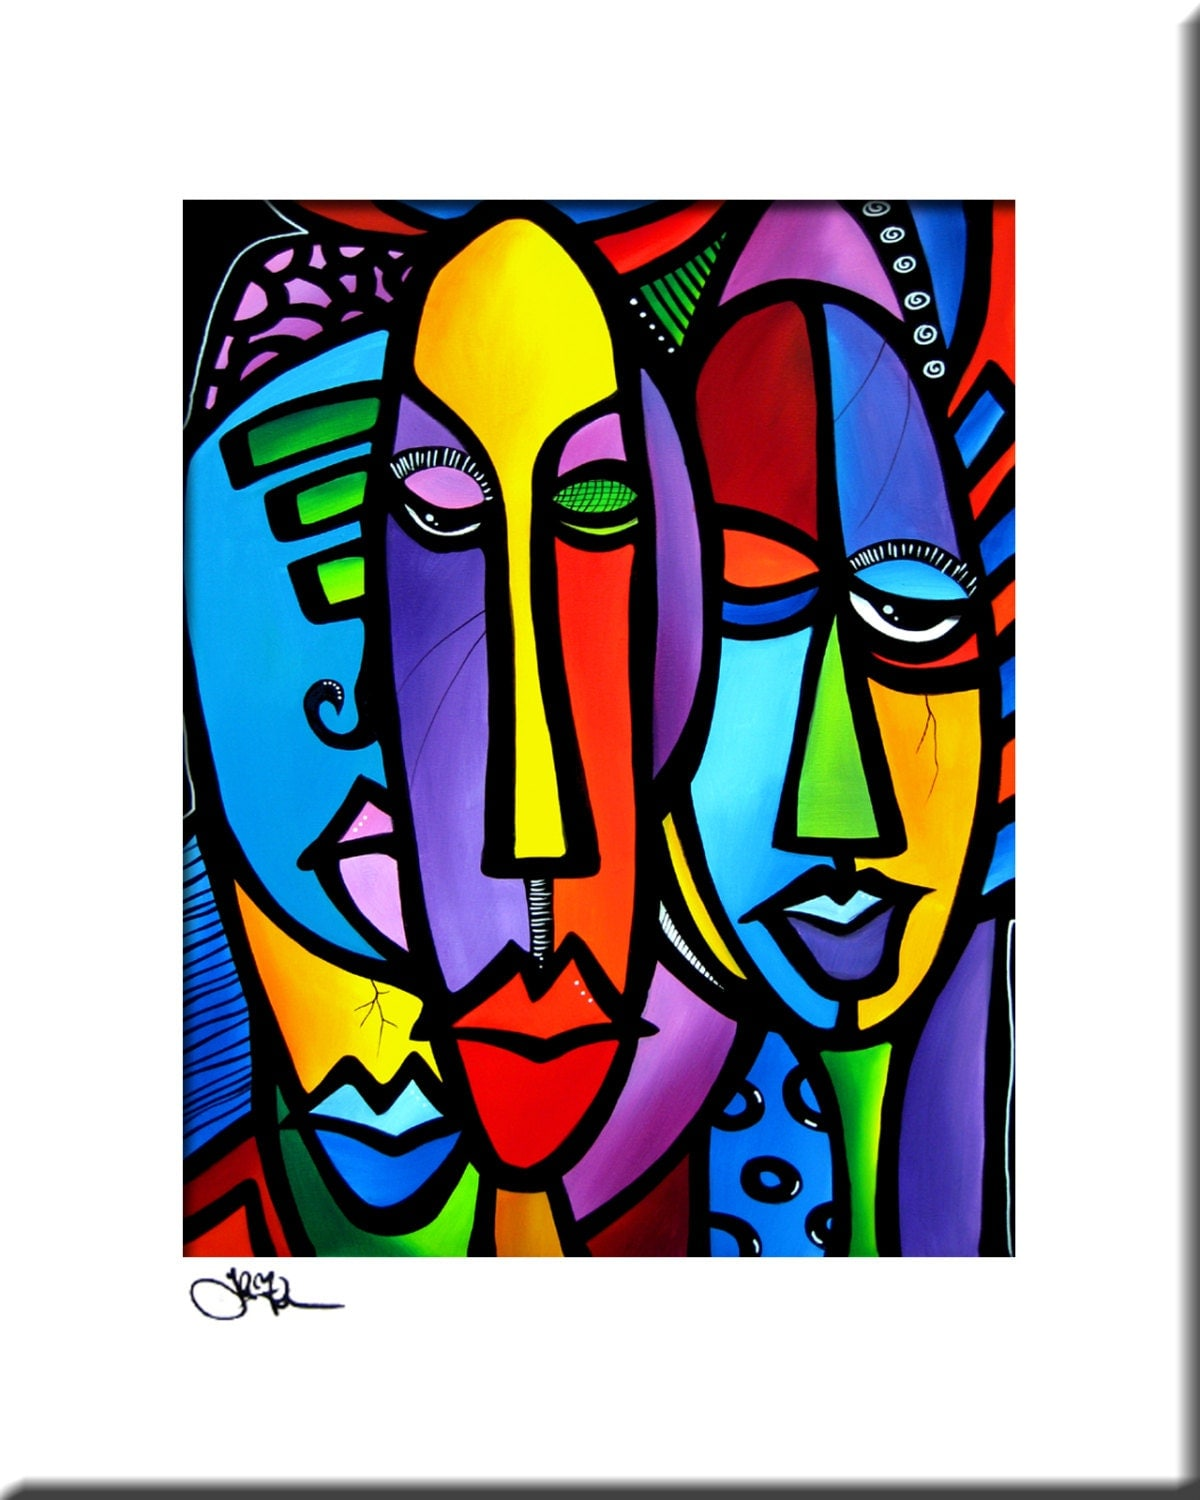 cranium original abstract painting modern art faces print decor by fidostudio ebay. Black Bedroom Furniture Sets. Home Design Ideas